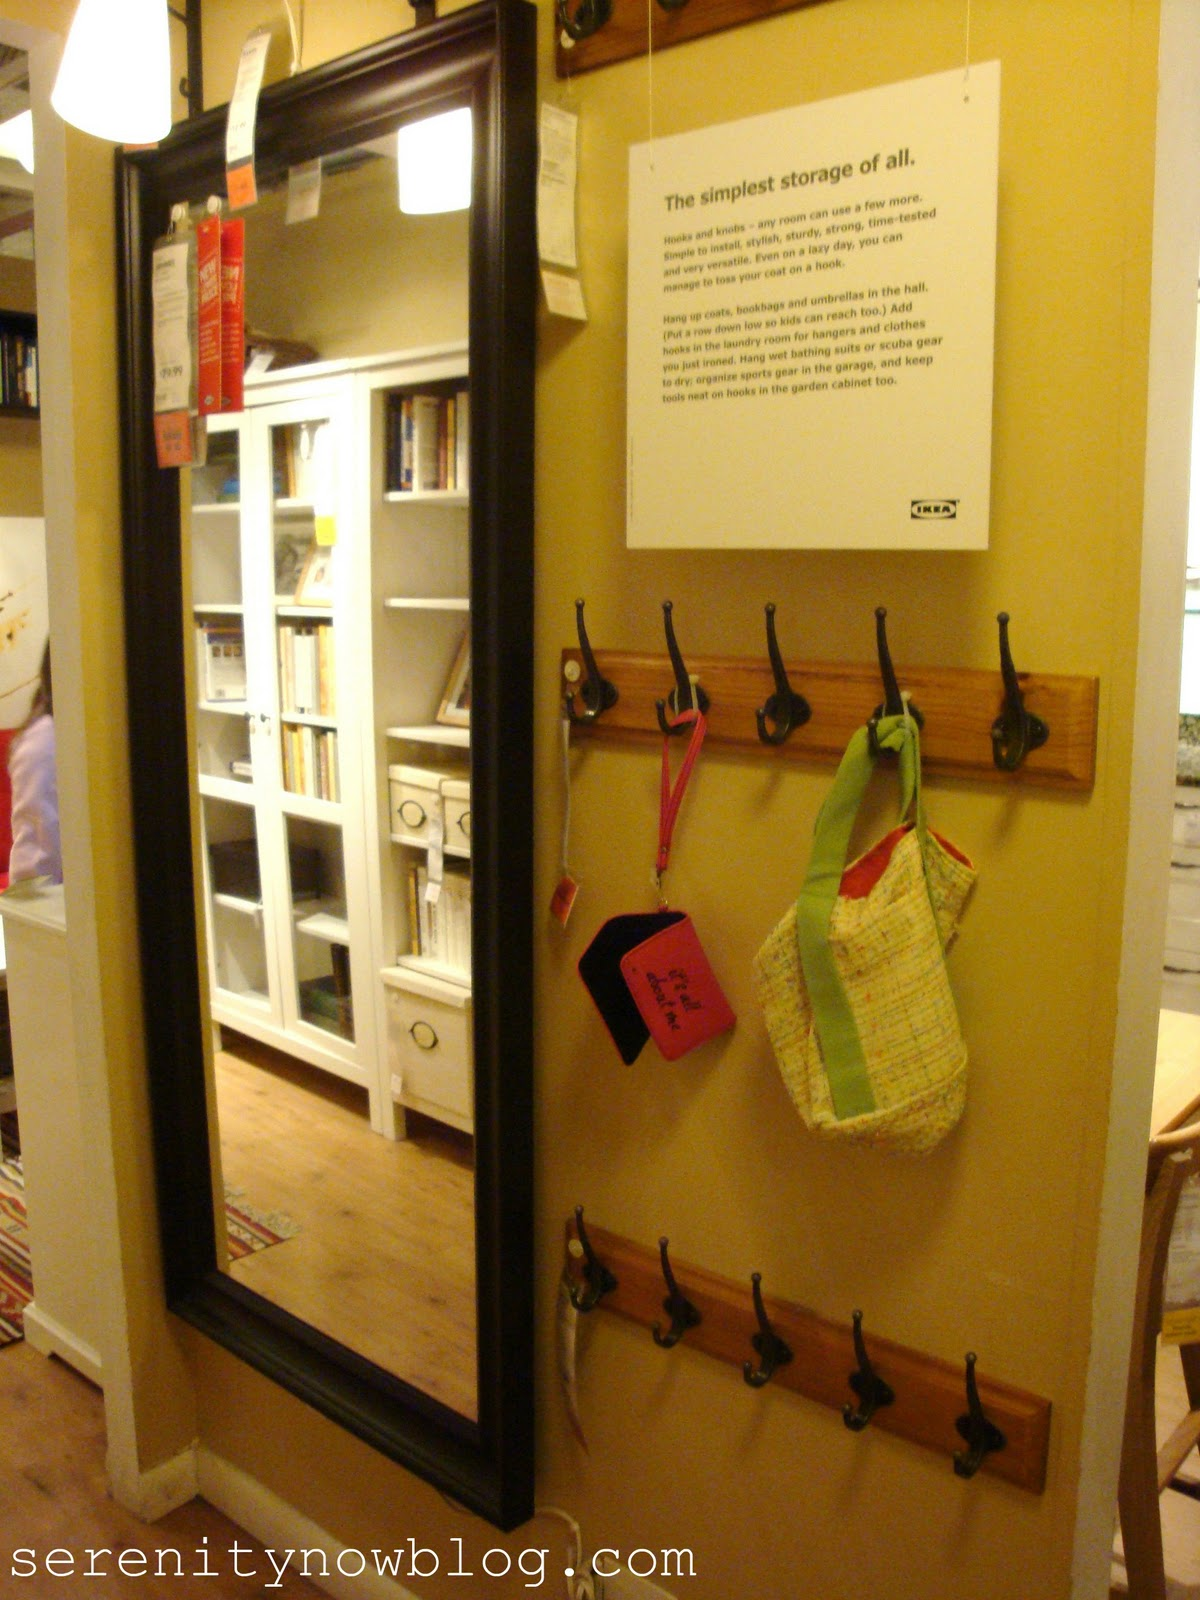 Ikea Drehstuhl Verksam Test ~ More hooks in this narrow mudroom space just like the sign says,  The